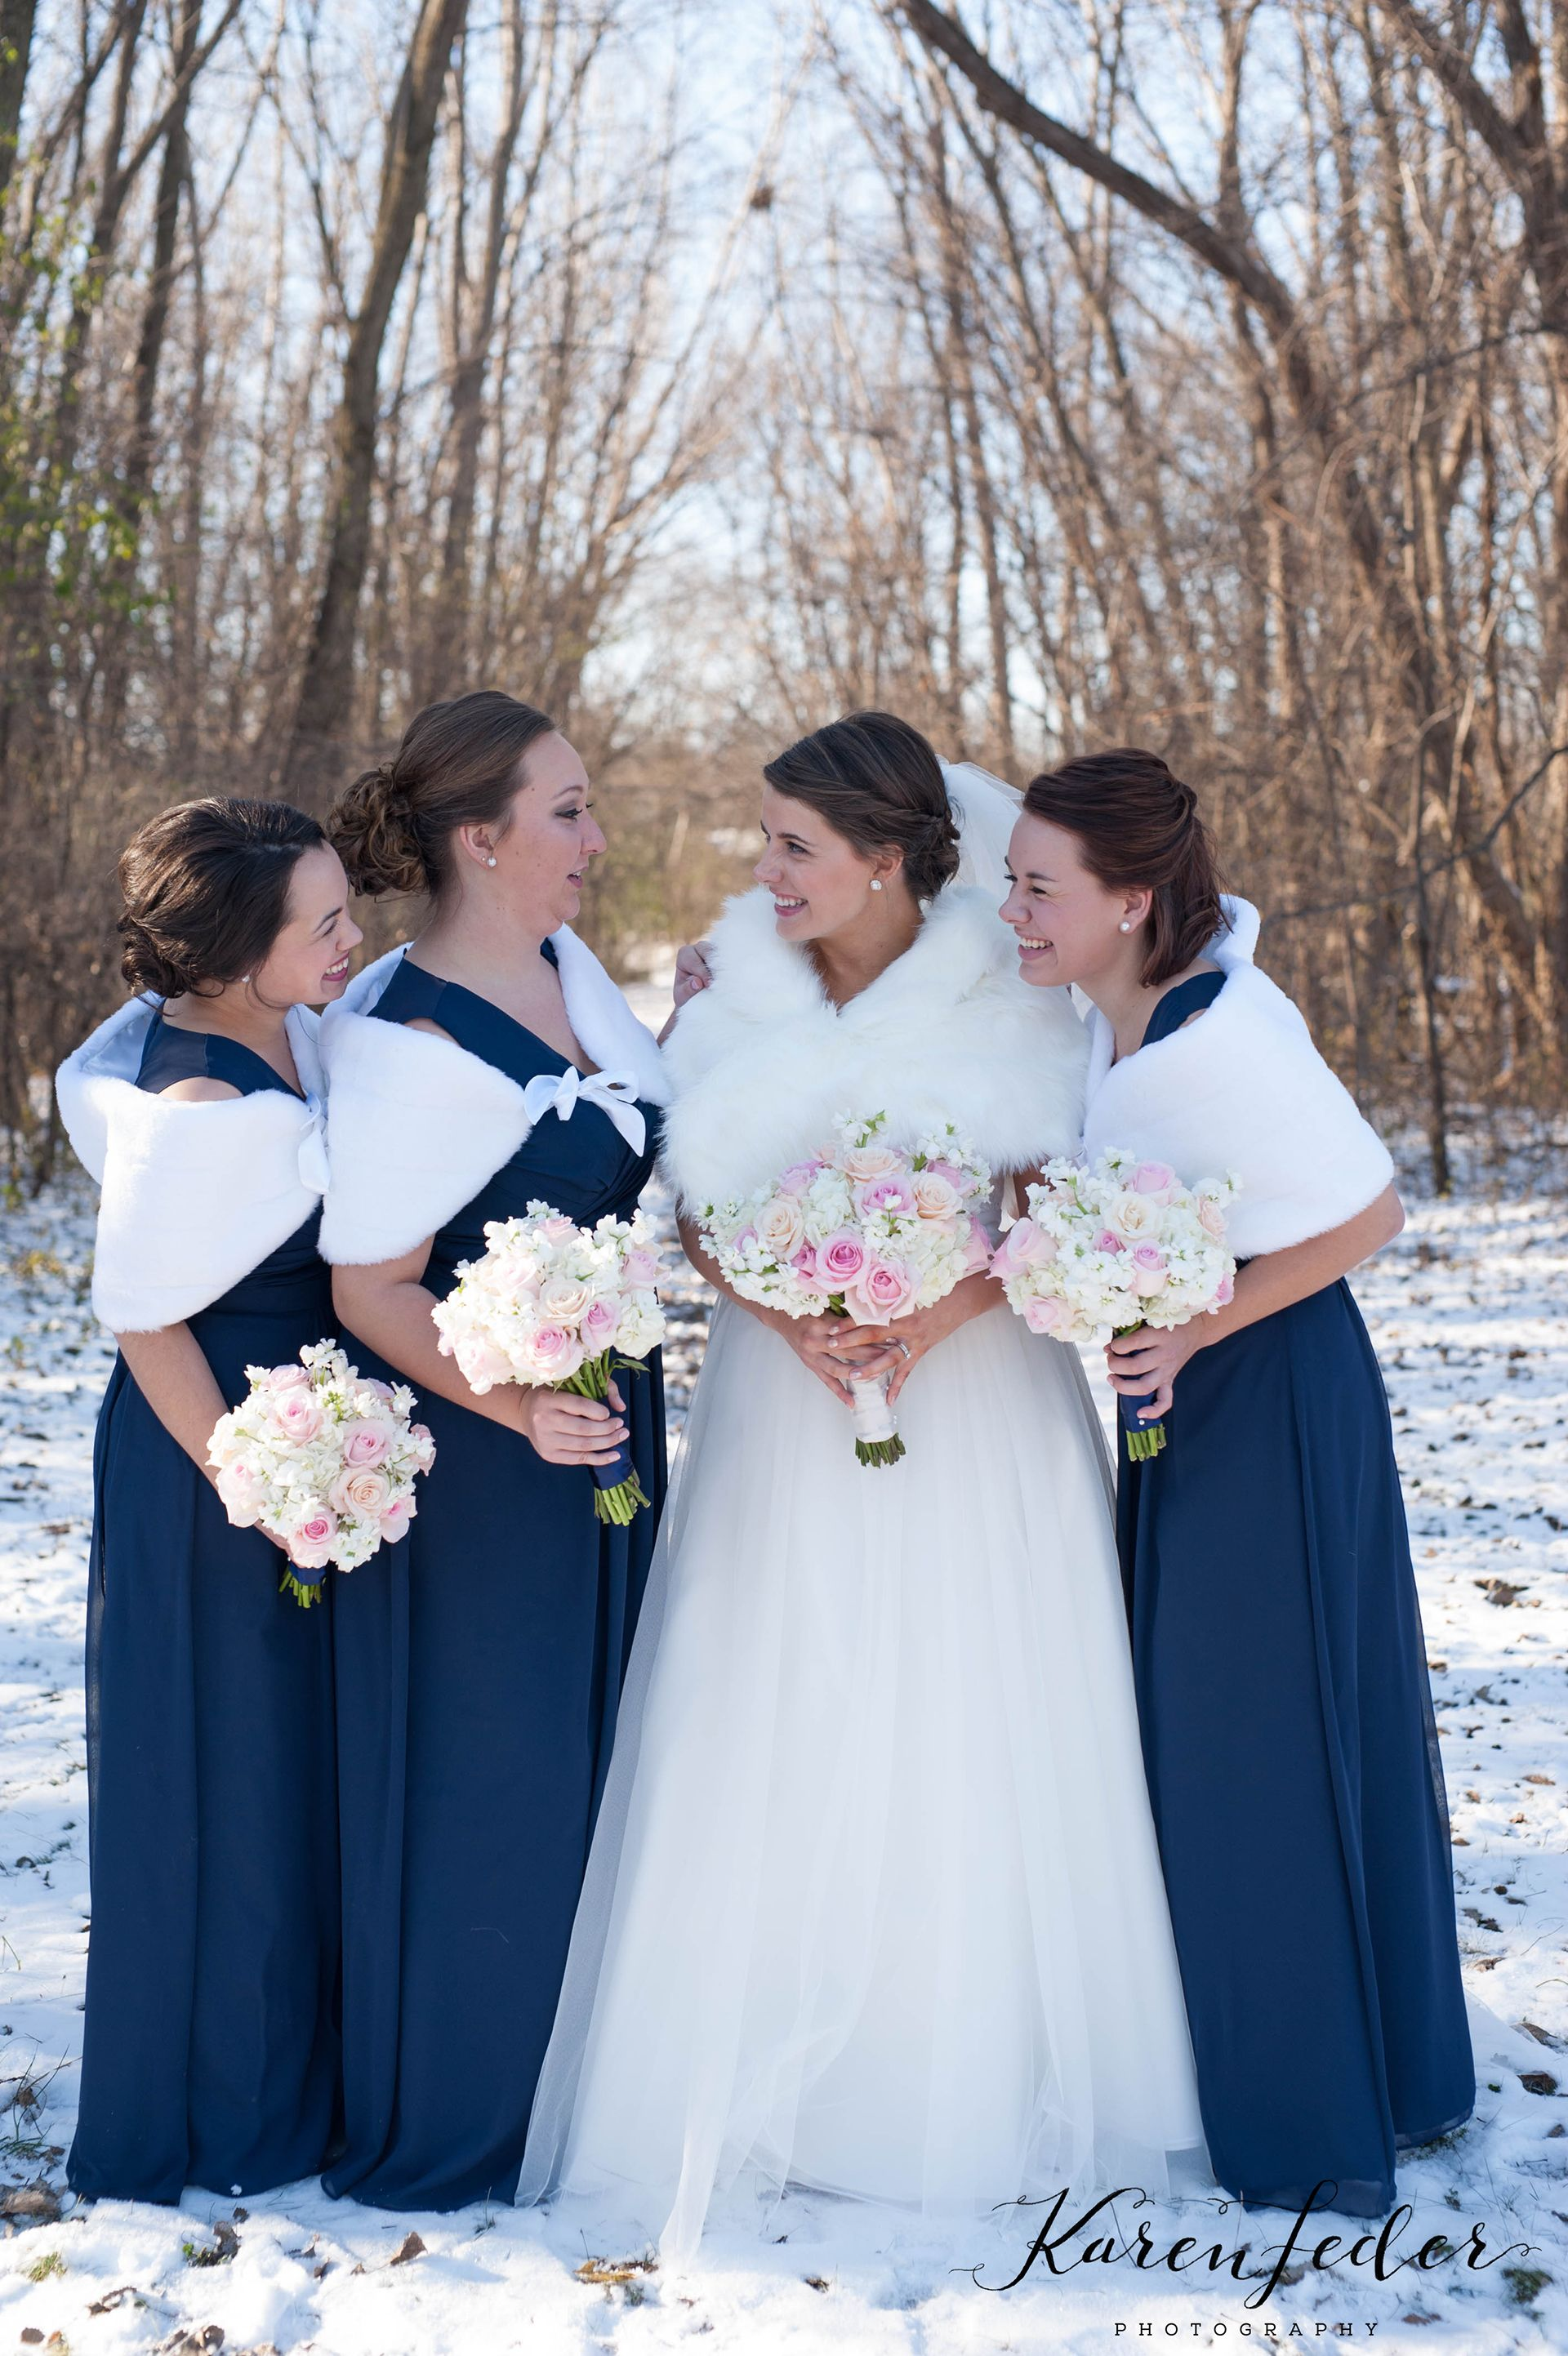 Love This Idea For A Winter Wedding Fur Shawls And Navy Bridesmaid Dresses Karen Feder Photography